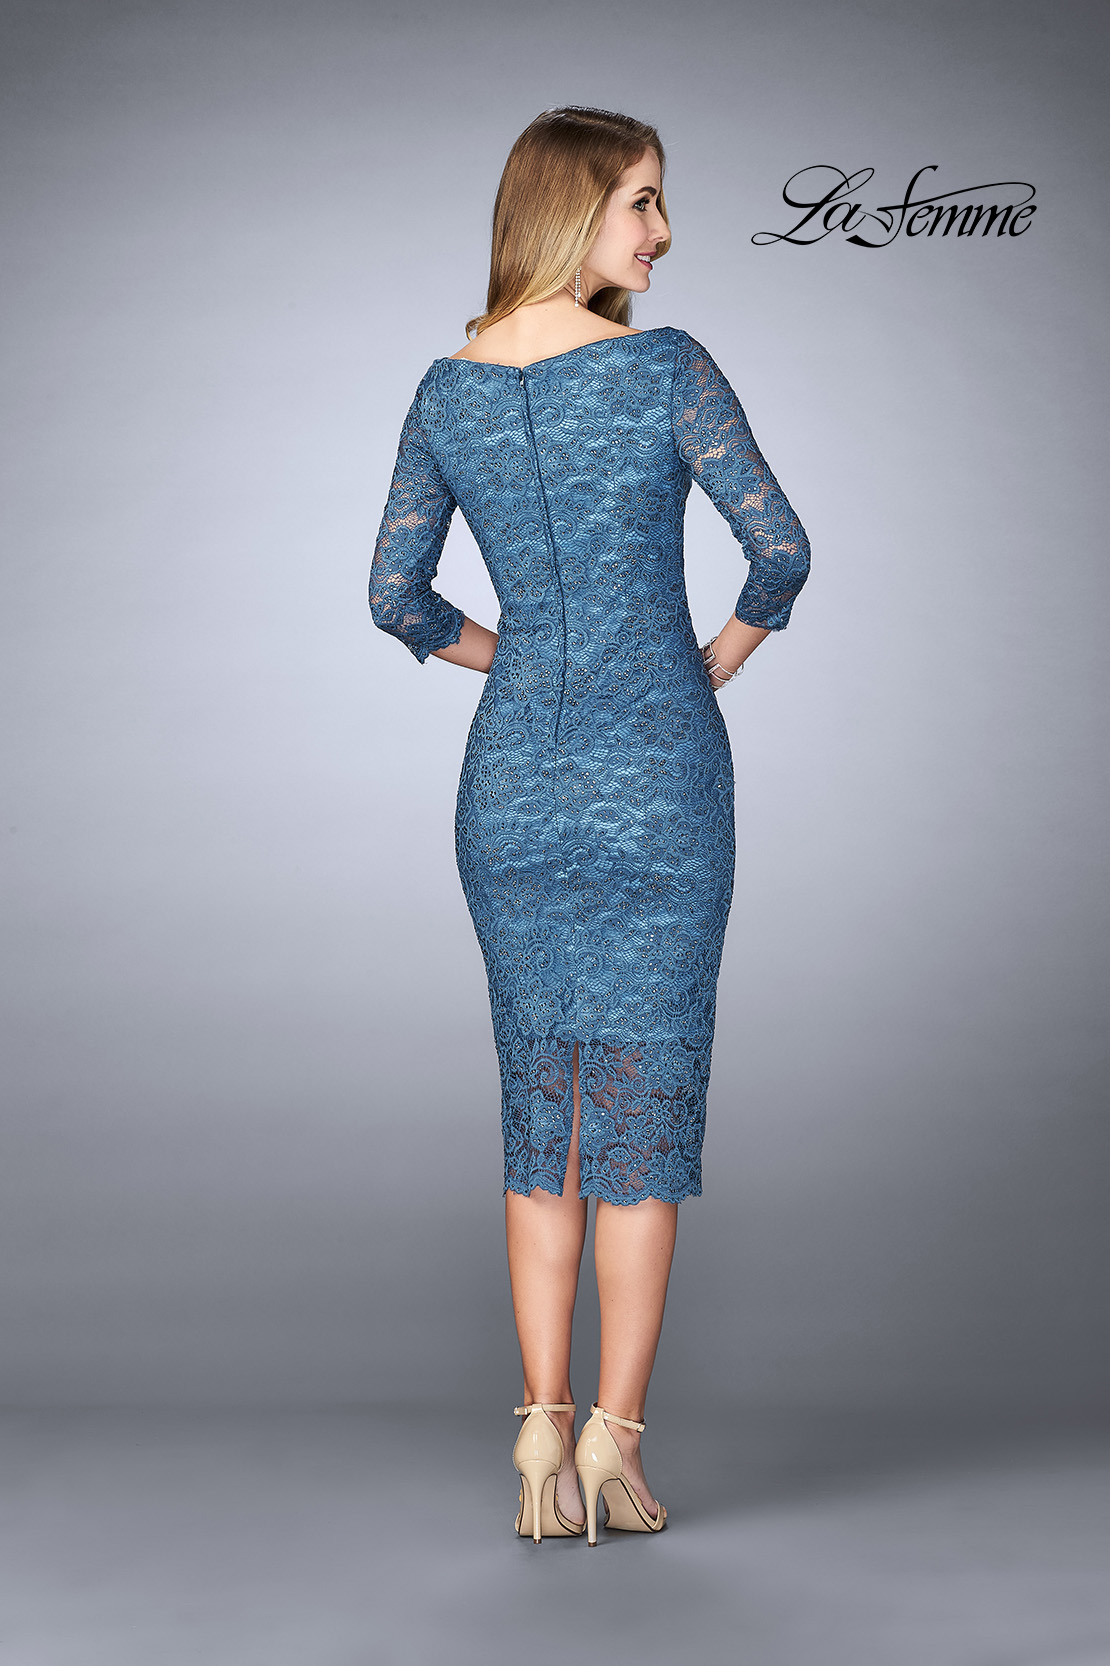 Dorable Rehearsal Dinner Dresses For Mother Of The Bride Collection ...